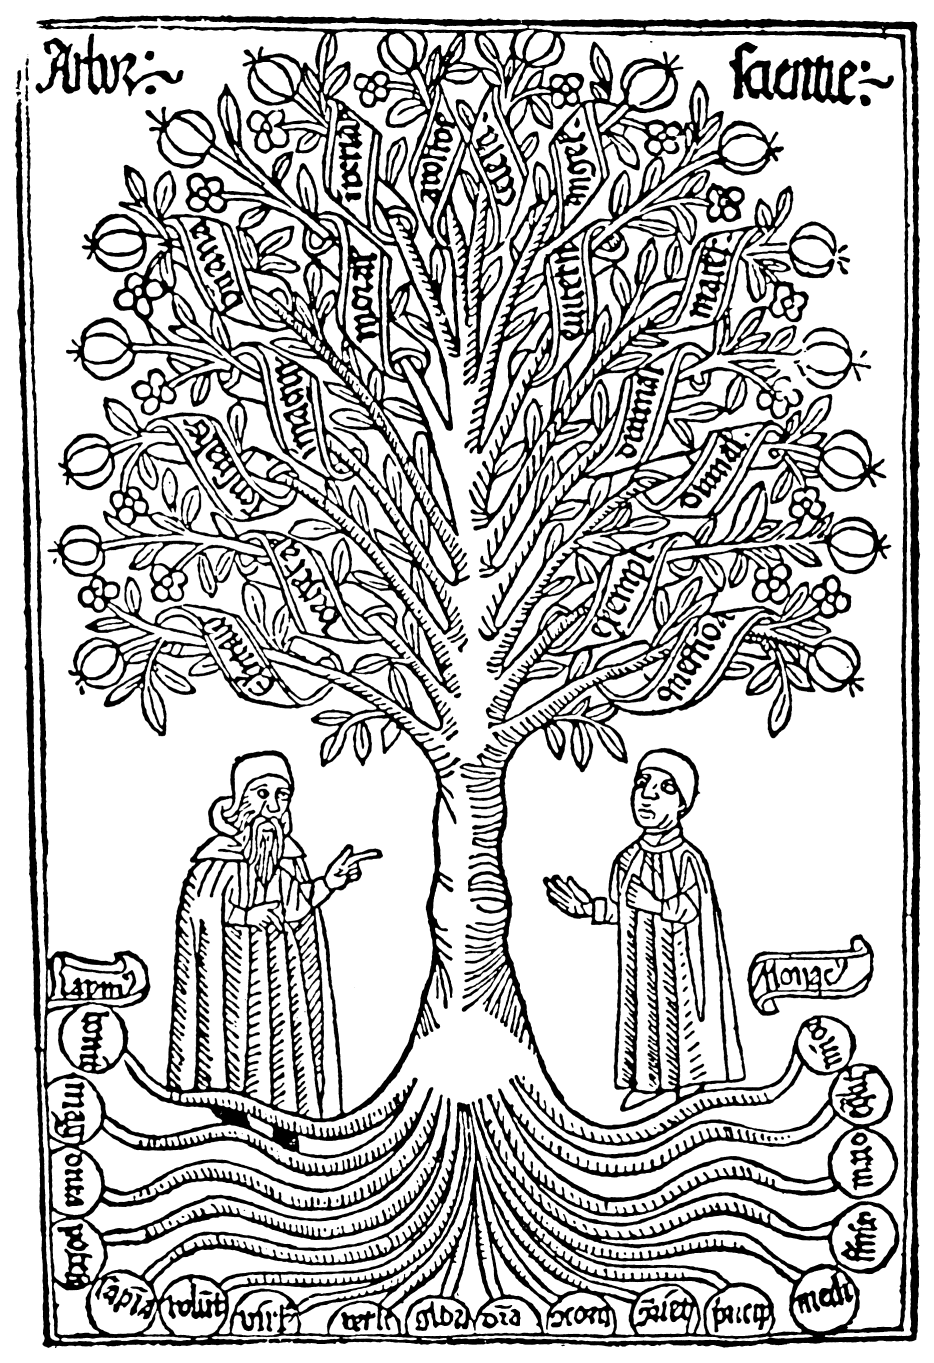 Arbor Scientiae, late thirteenth century. [via]